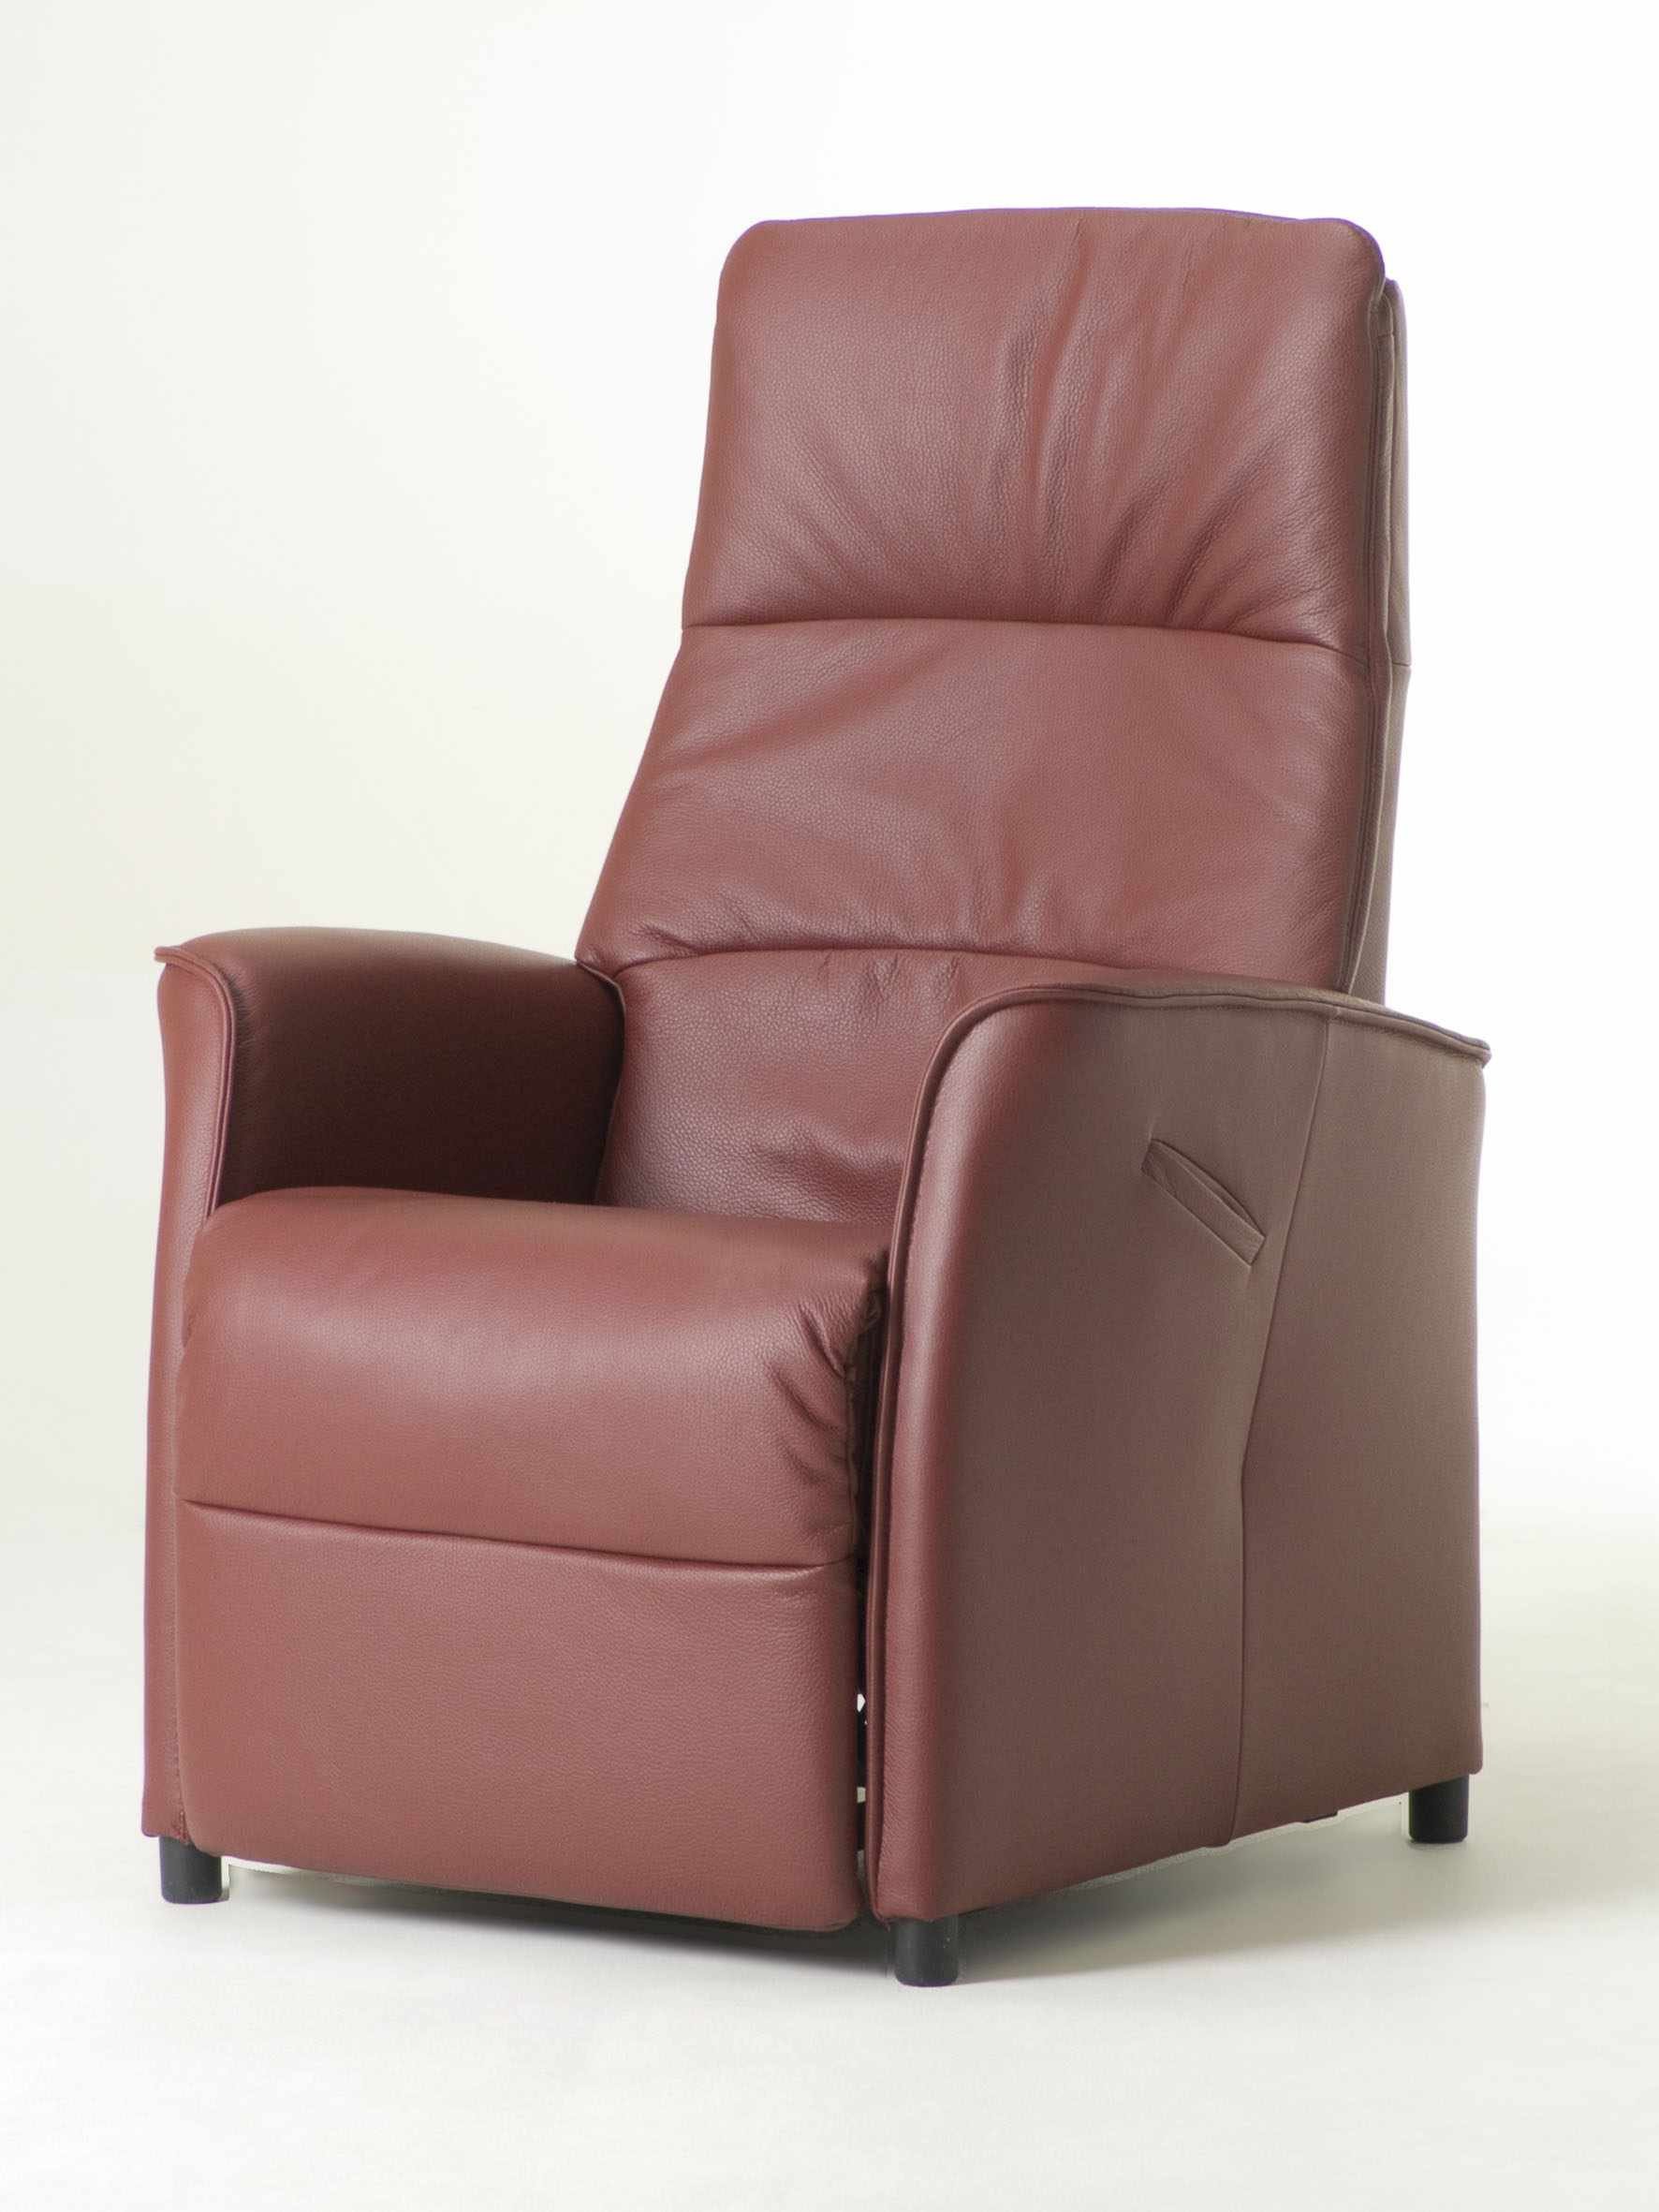 Sta Op Fauteuil.Sta Op Fauteuil St Apos Up Bruin Small